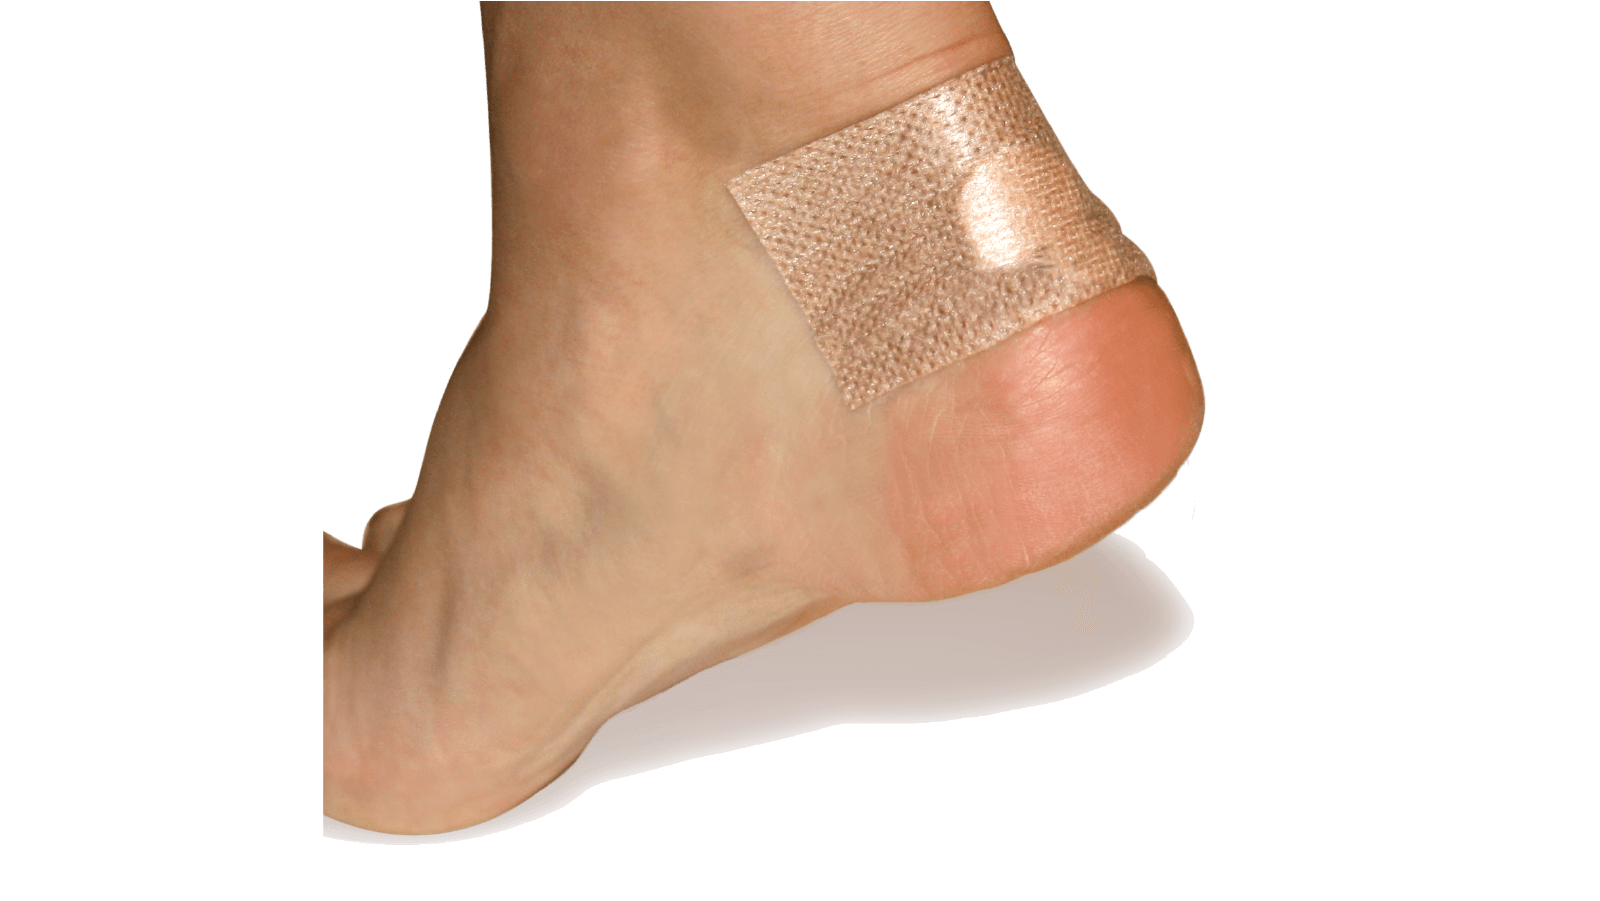 Adhesive knit strip from the Spenco 2nd skin blister kit placed on a heel